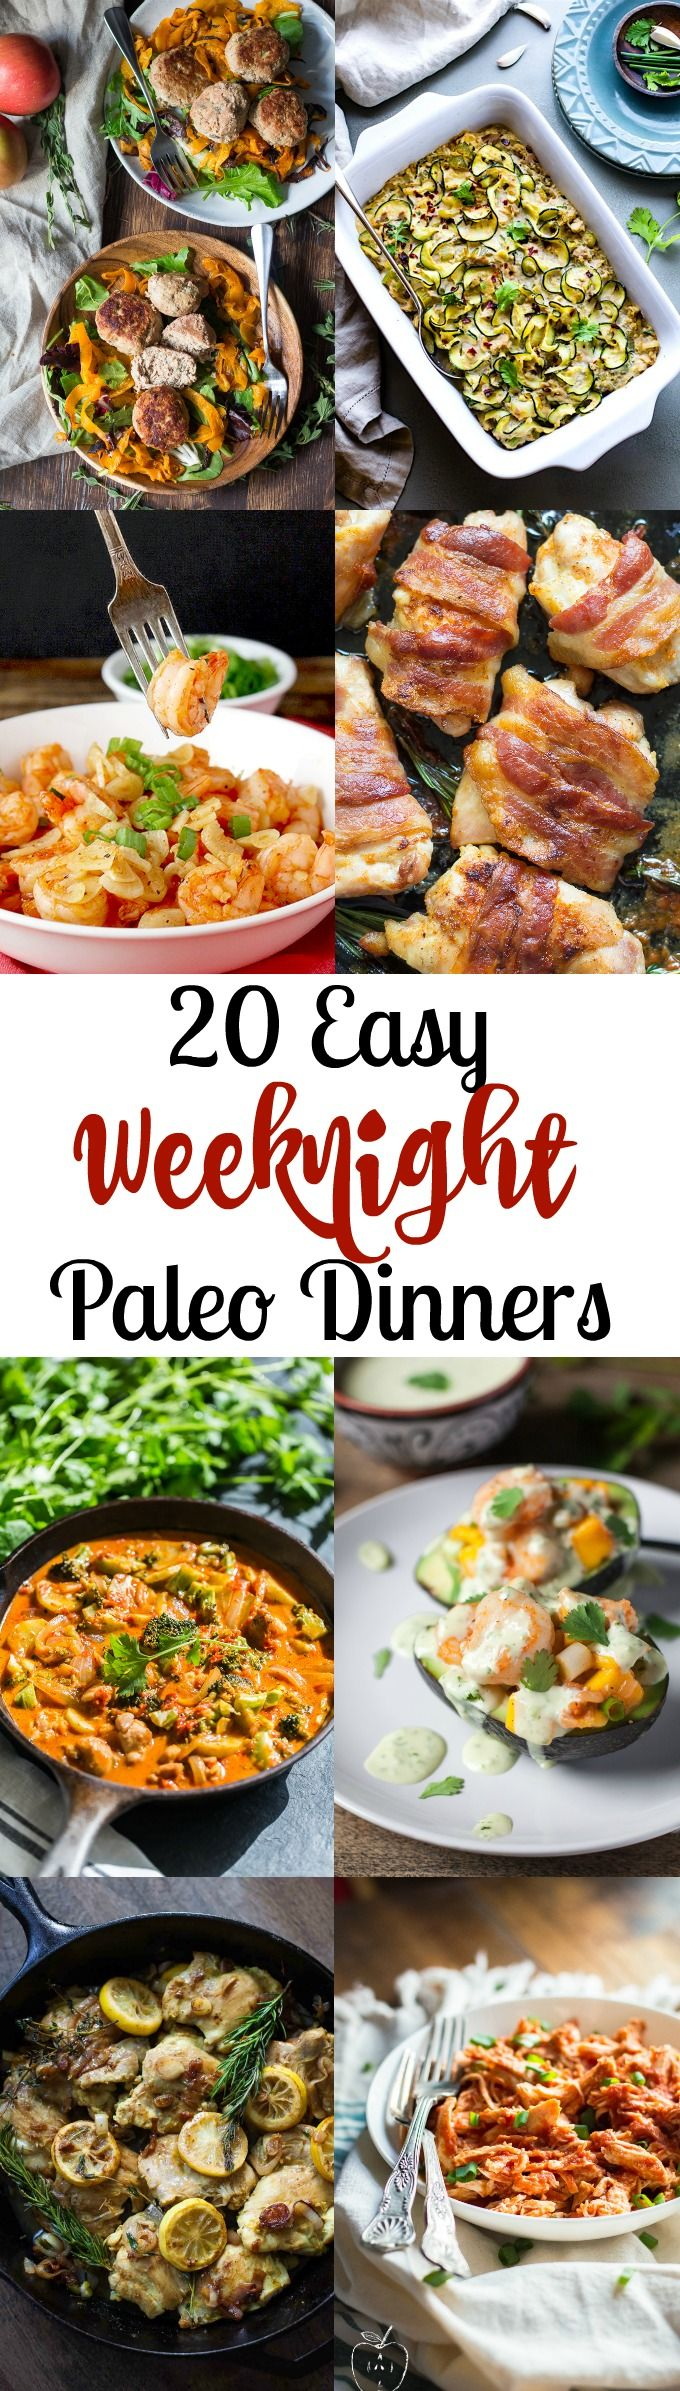 20-easy-weeknight-paleo-dinners-with-many-quick-whole30-and-kid-friendly-options-too